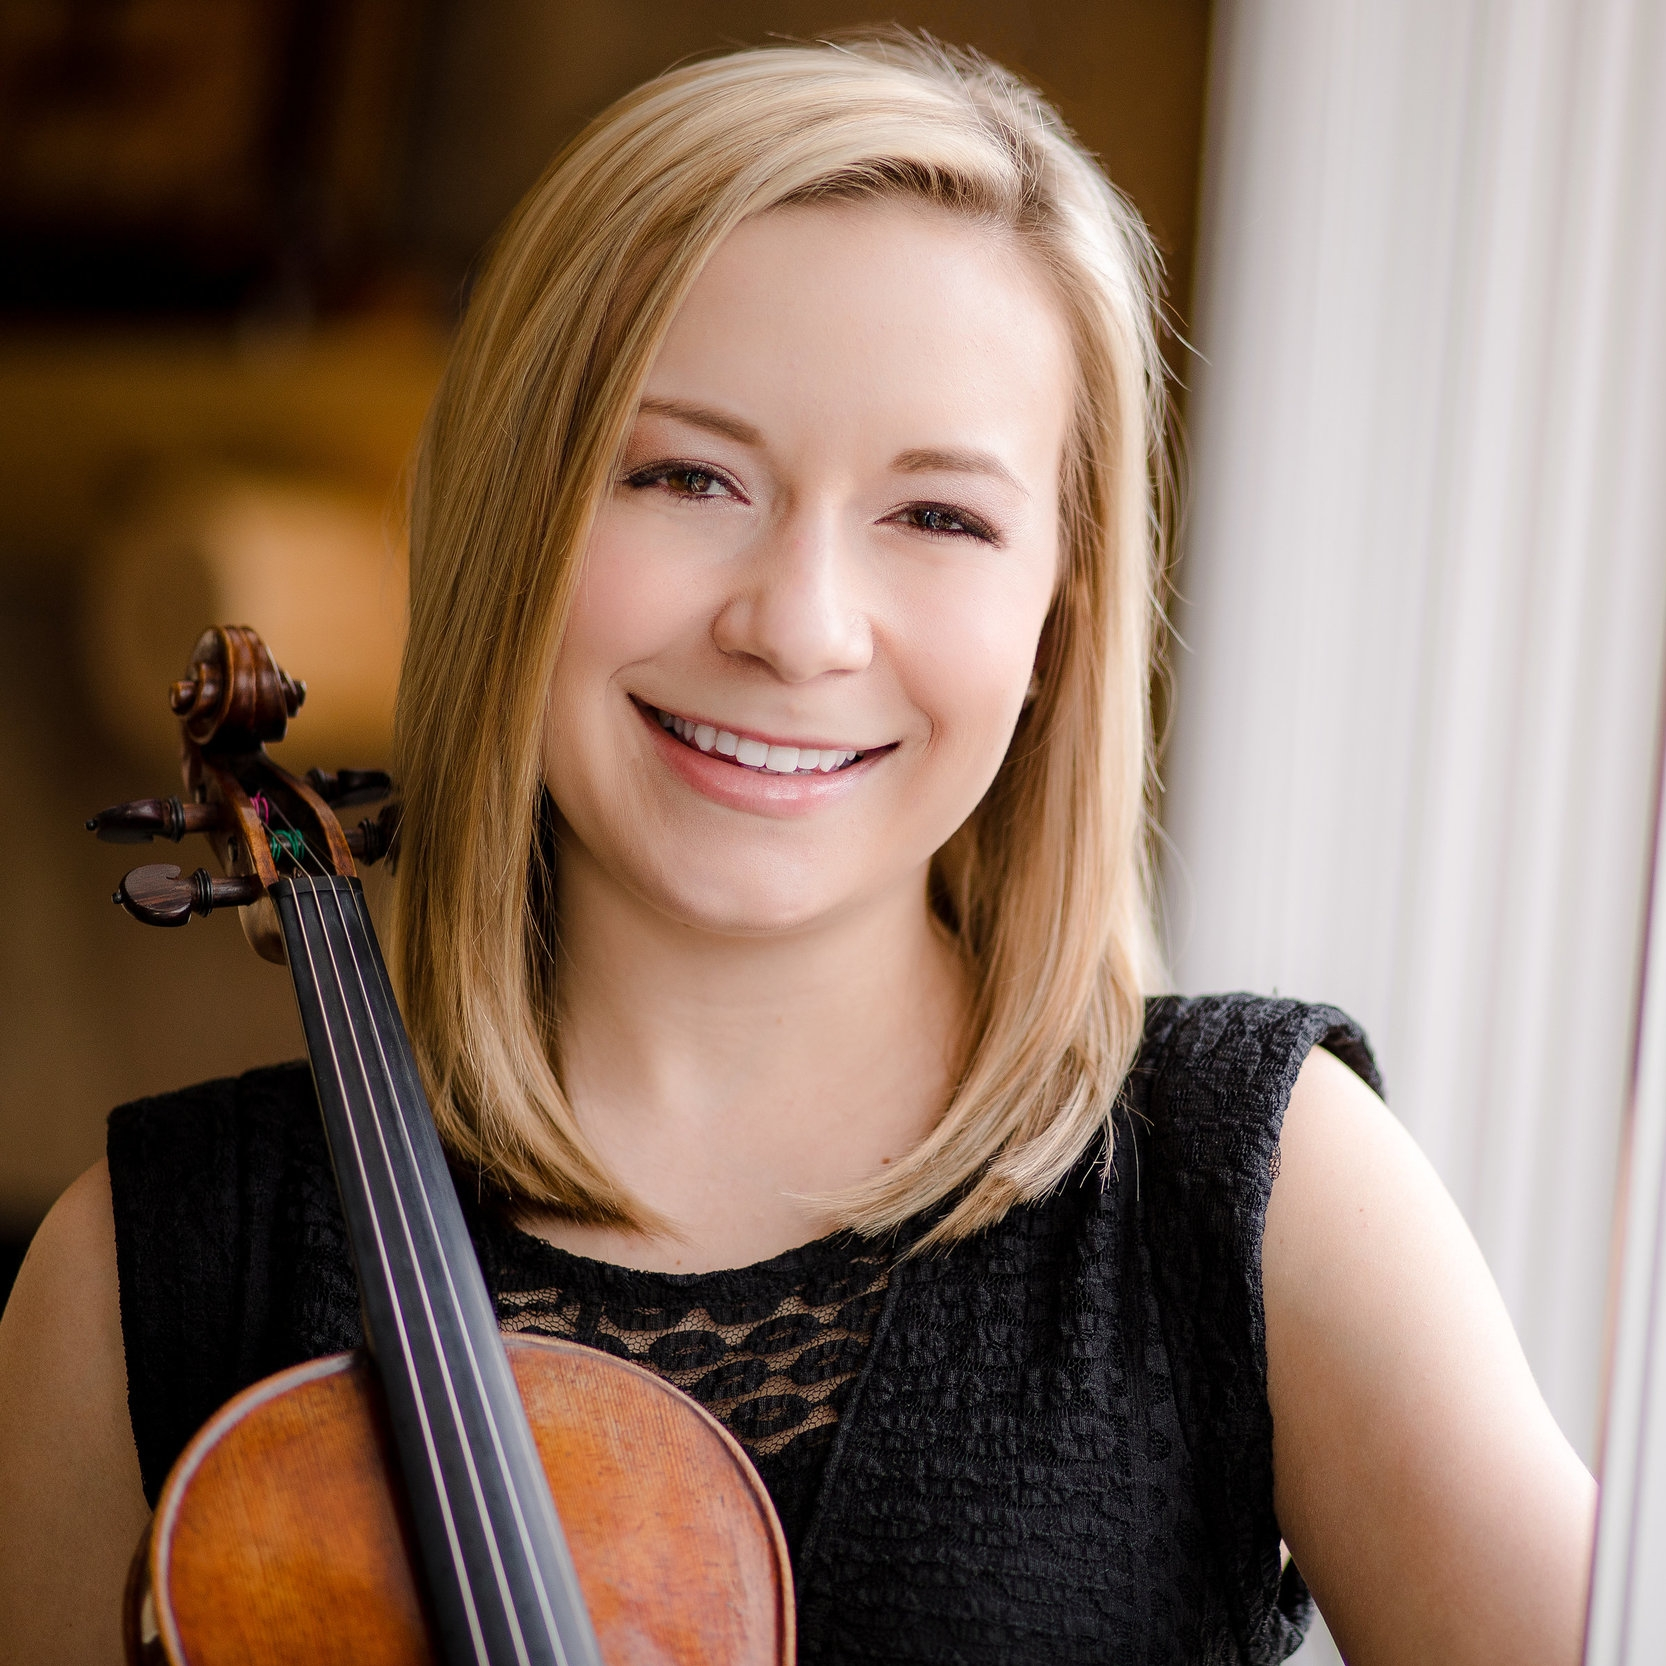 Kelly Jozwiak, Violin